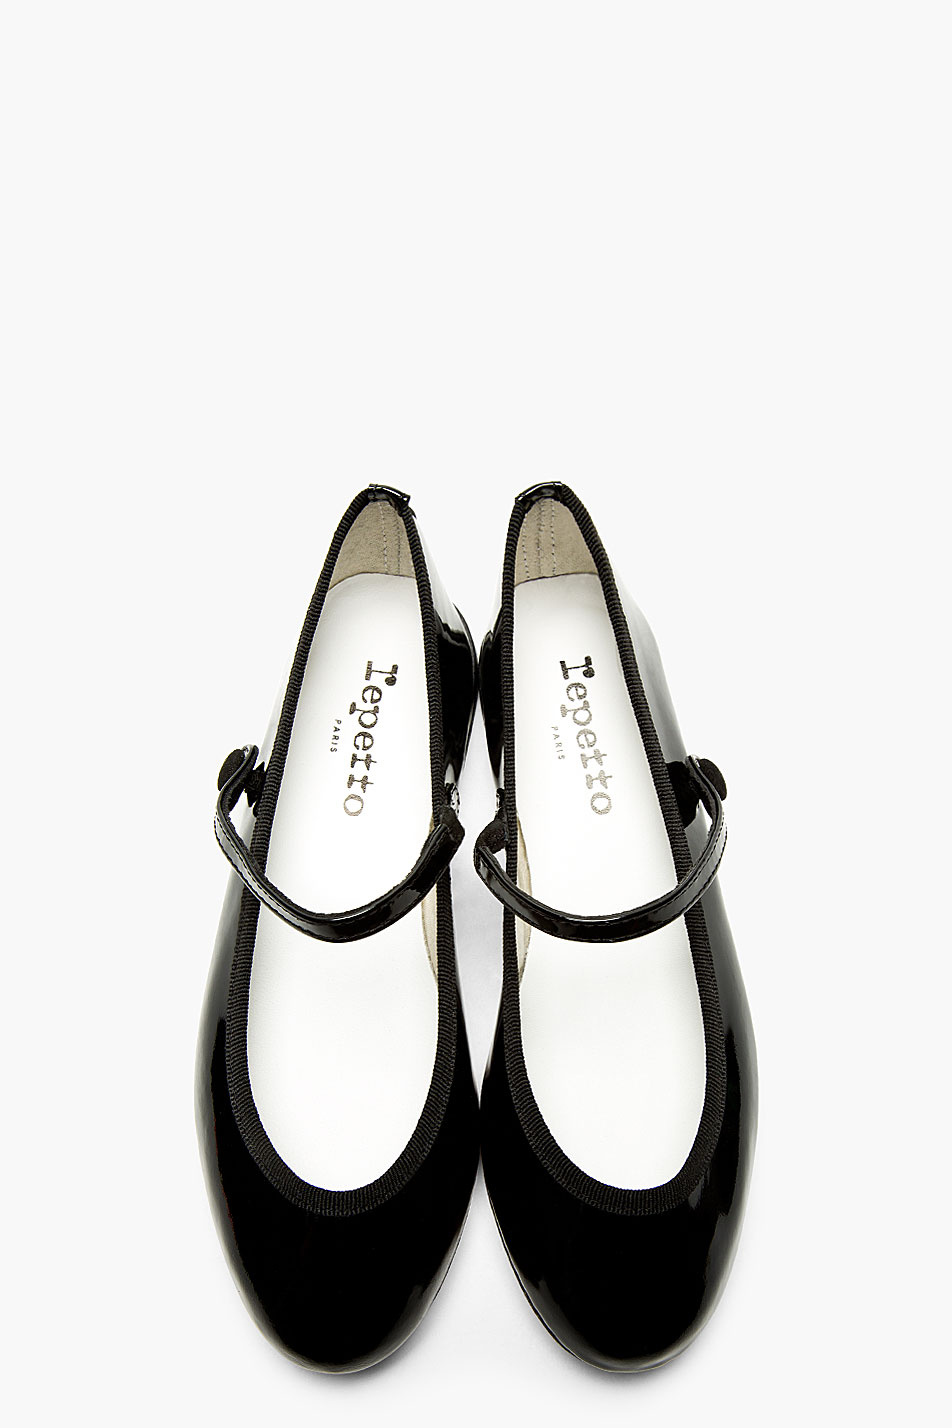 Black Patent Mary Jane Shoes Leather